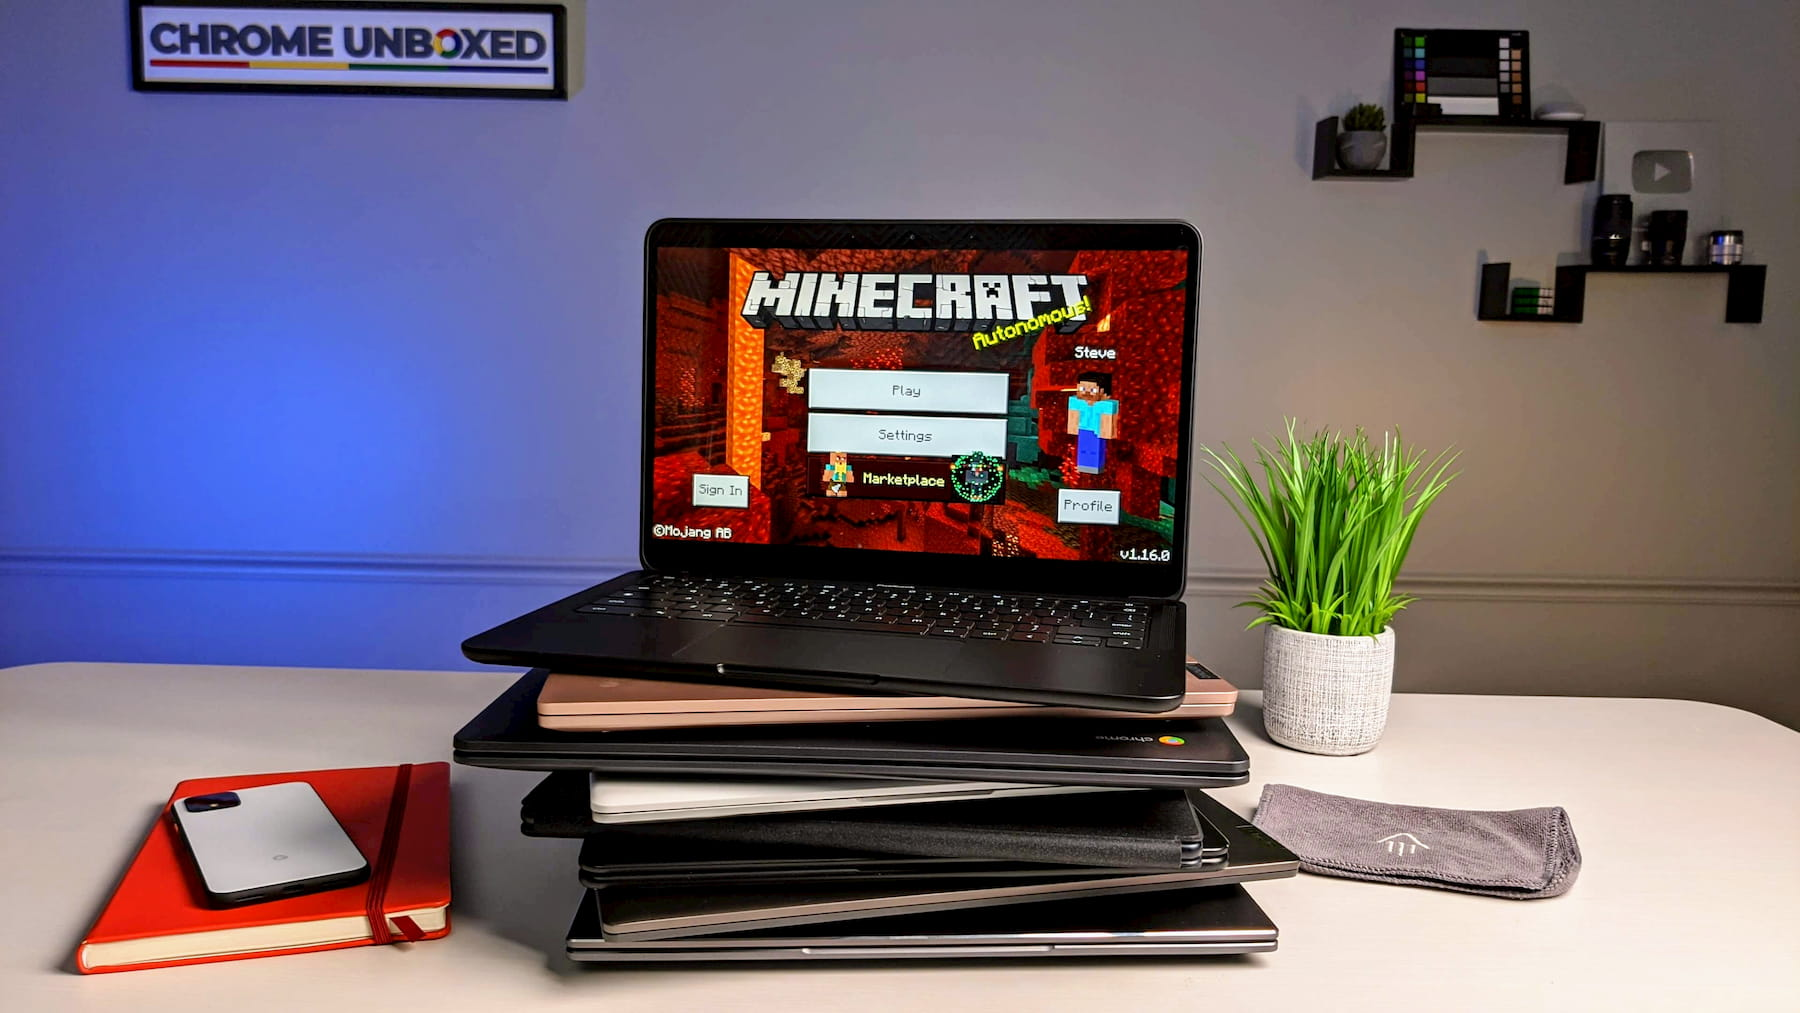 Latest Minecraft Android update breaks compatibility for all Chromebooks except one